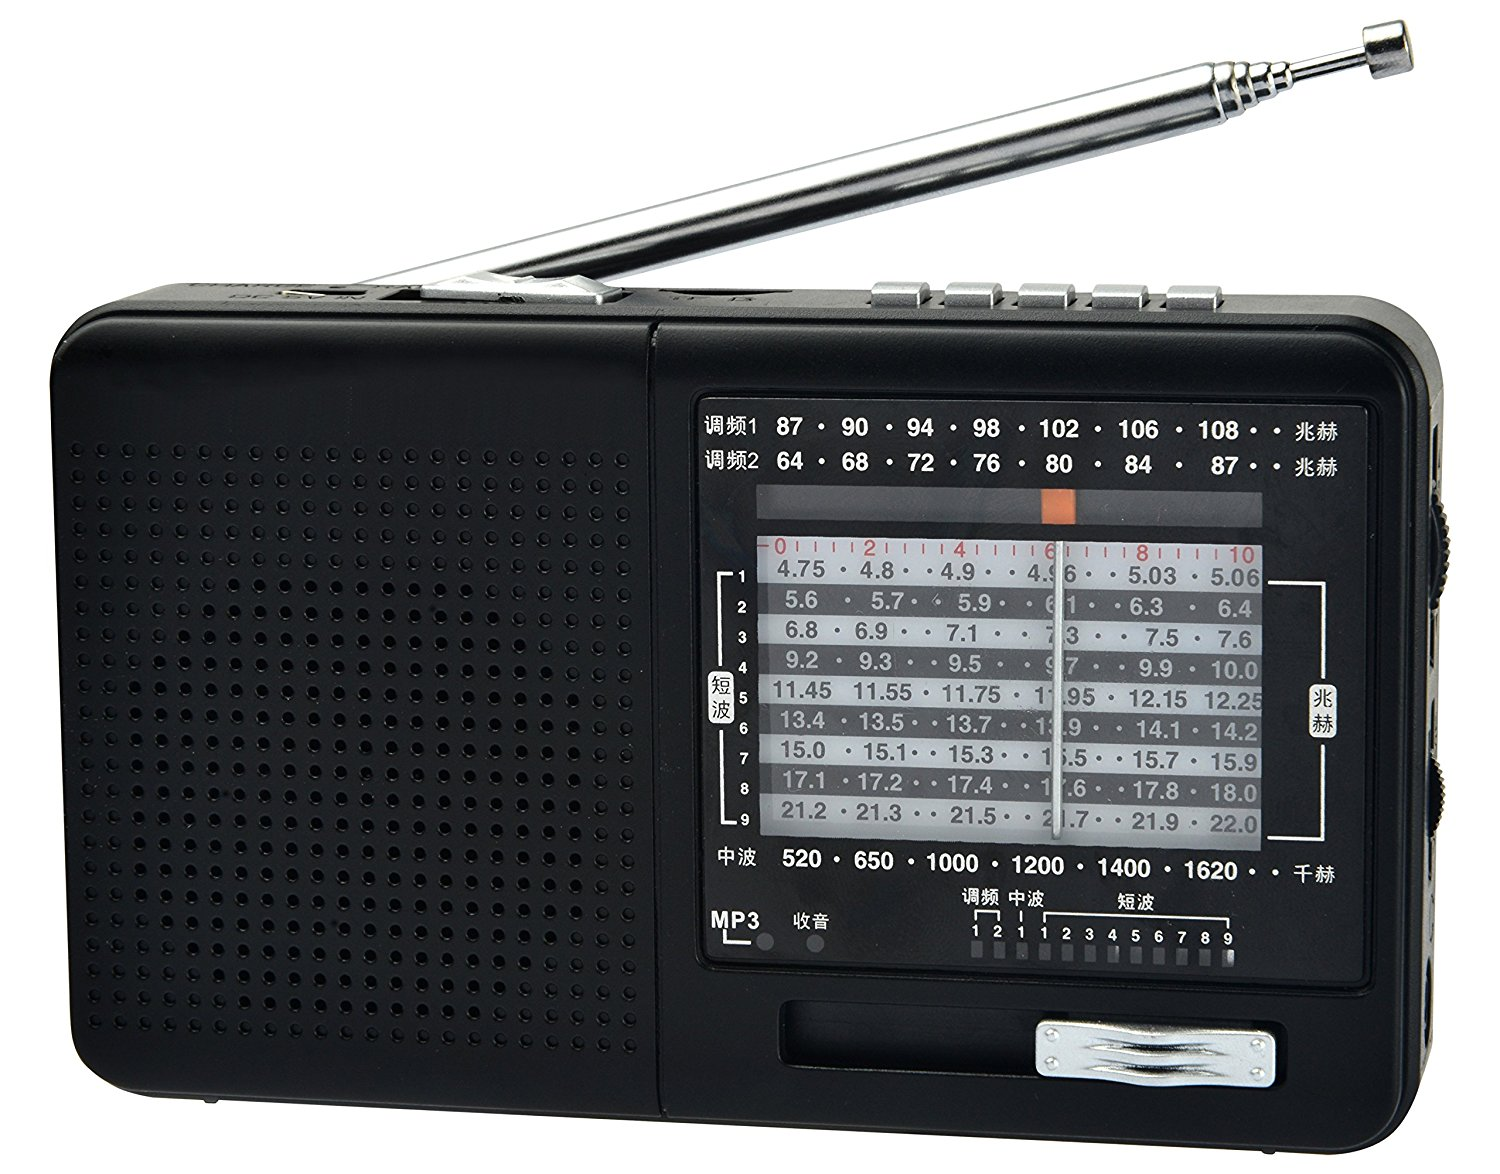 Xhdata The Swling Post Direct Coupled Radio Guest A Review Of D 328 Portable